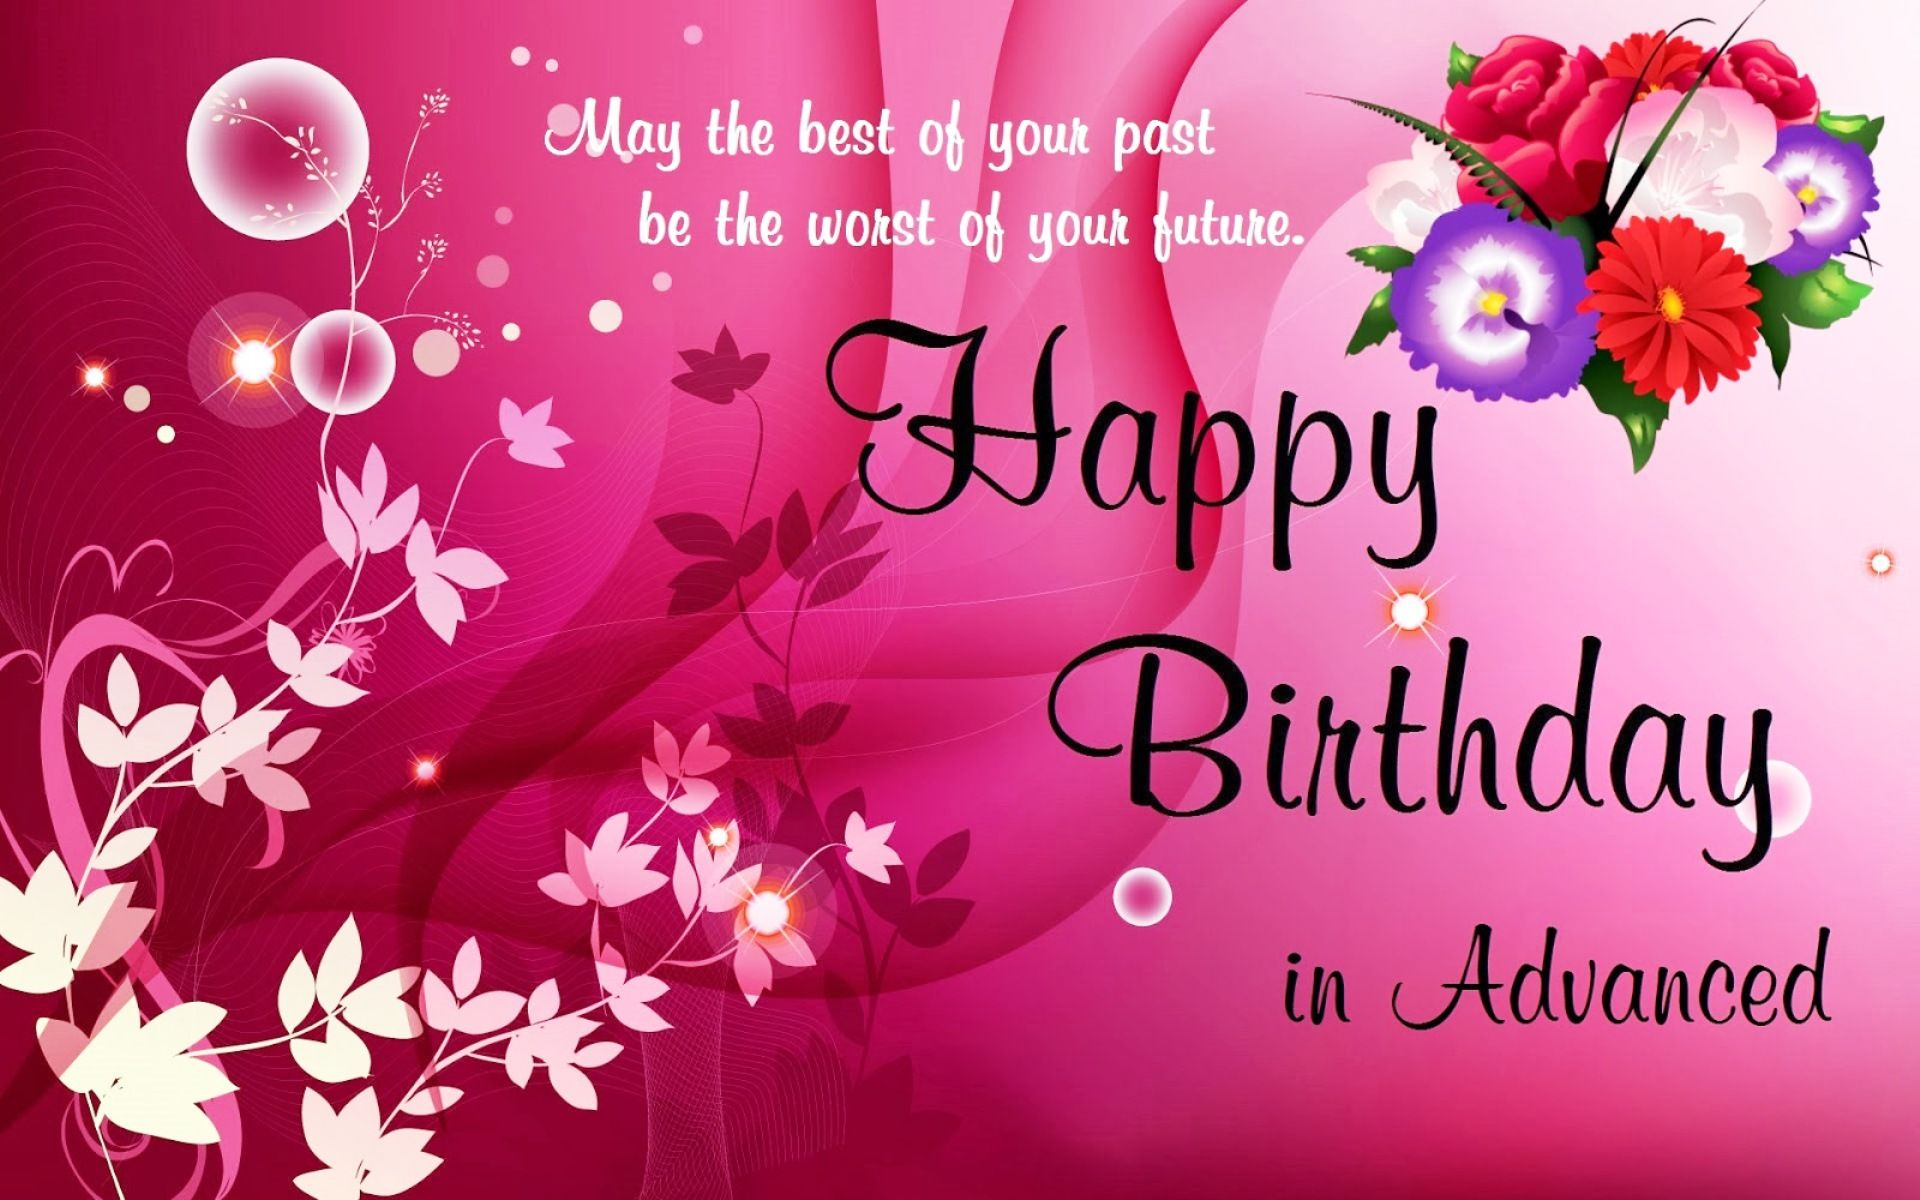 Happy Birthday Wishes Wallpapers Get the Newest Collection of – Birthday Greeting Pictures Free